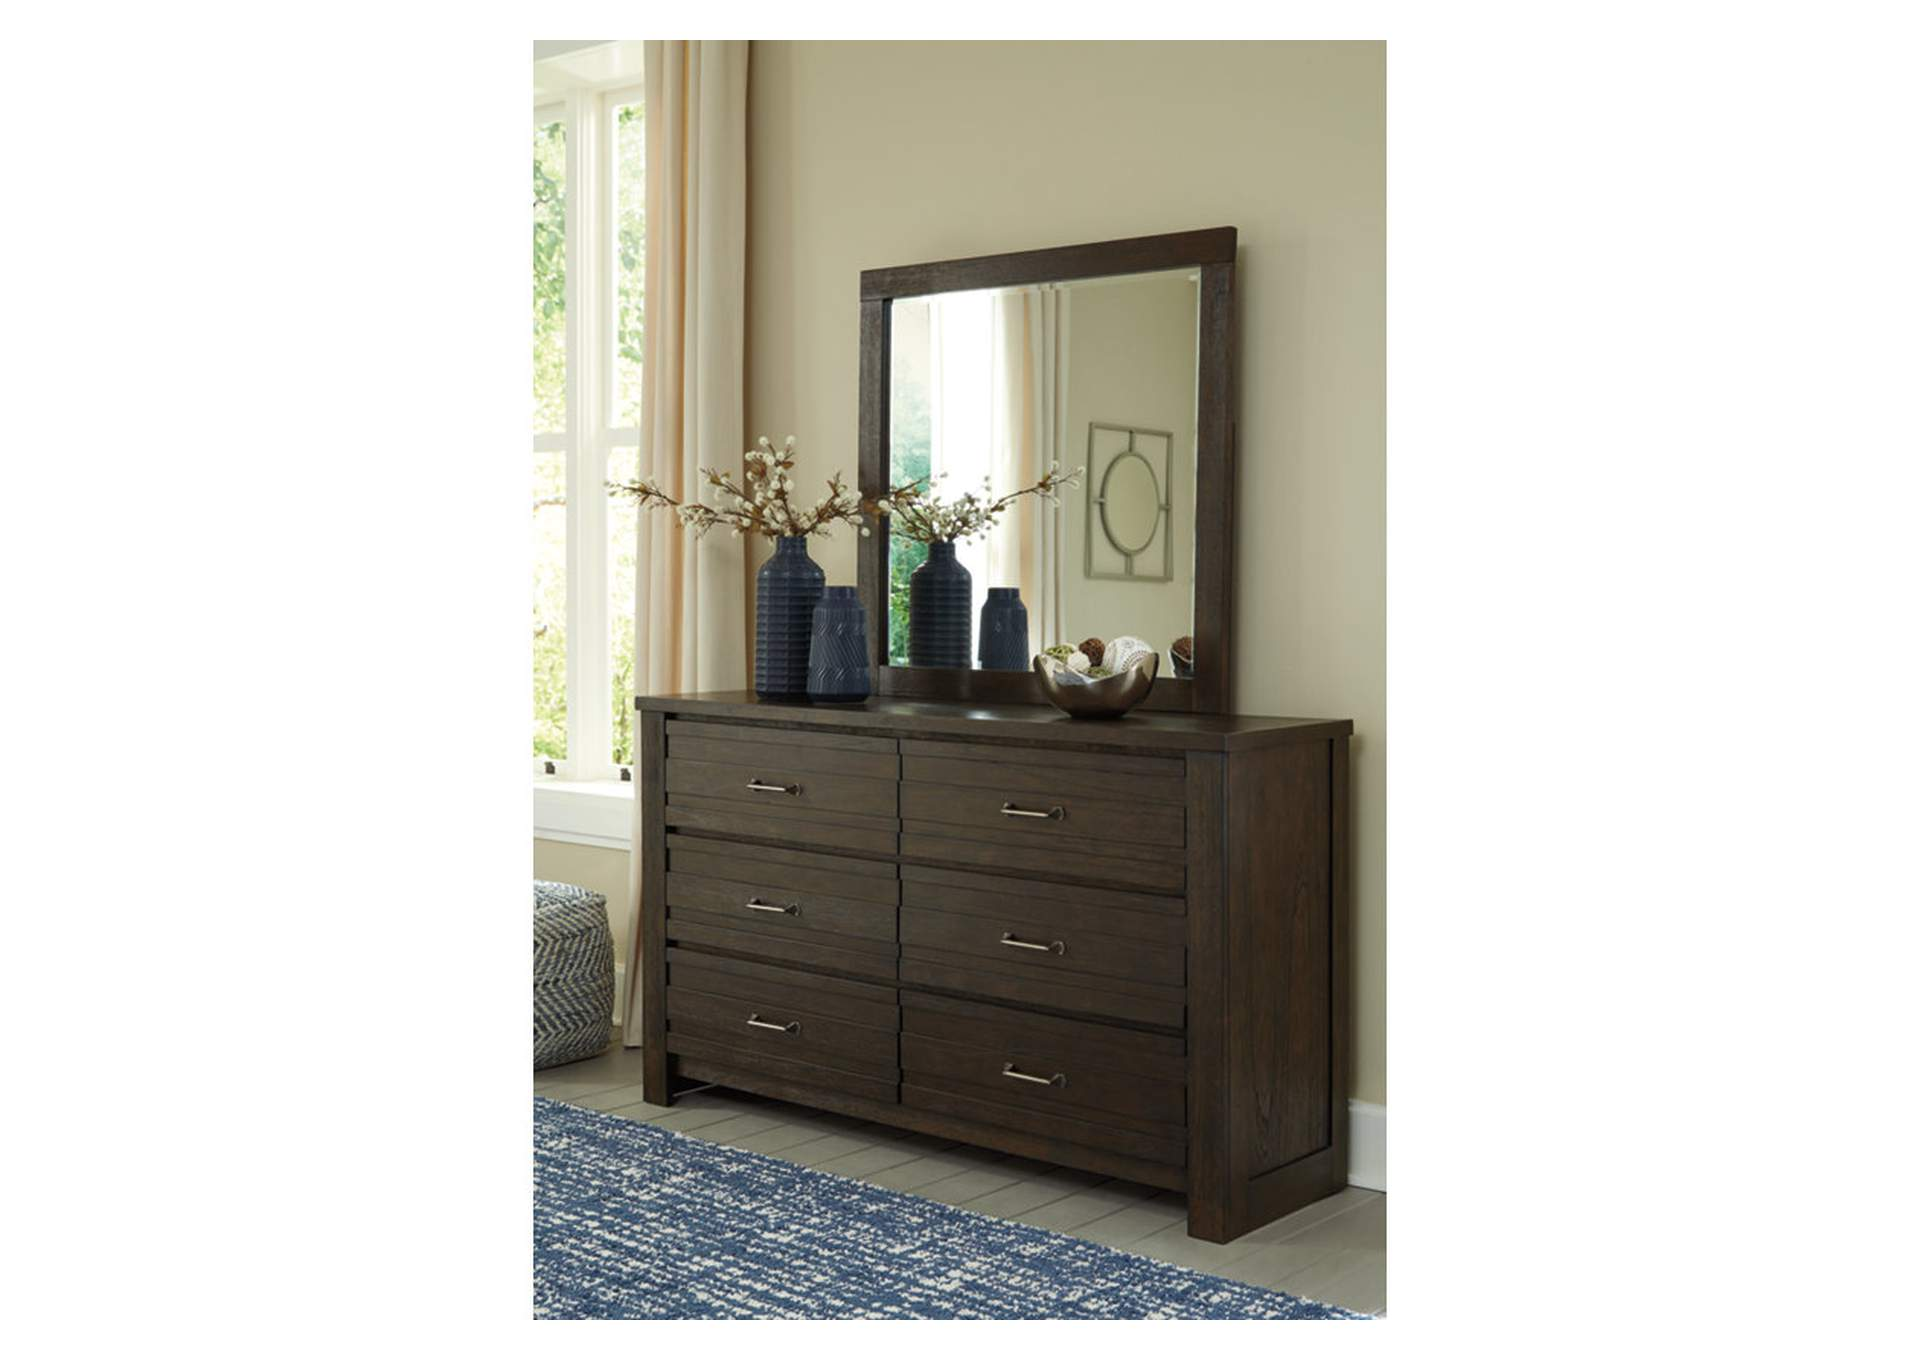 Darbry Brown Dresser & Mirror,Signature Design By Ashley